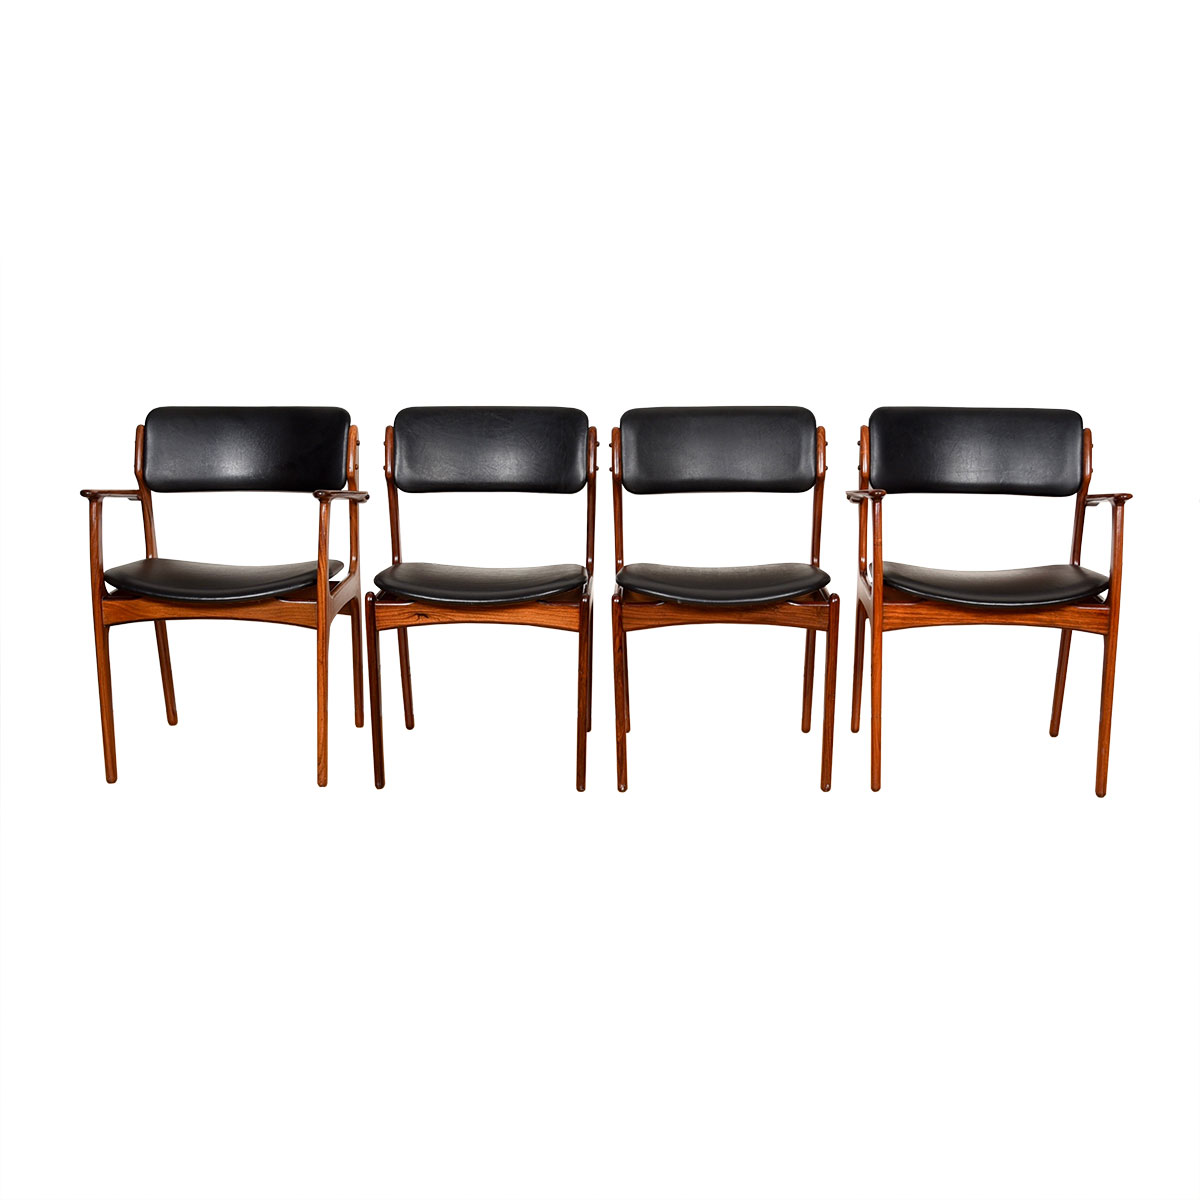 Set of 4 (2 Arm + 2 Side) Danish Rosewood Erik Buch Dining Chairs